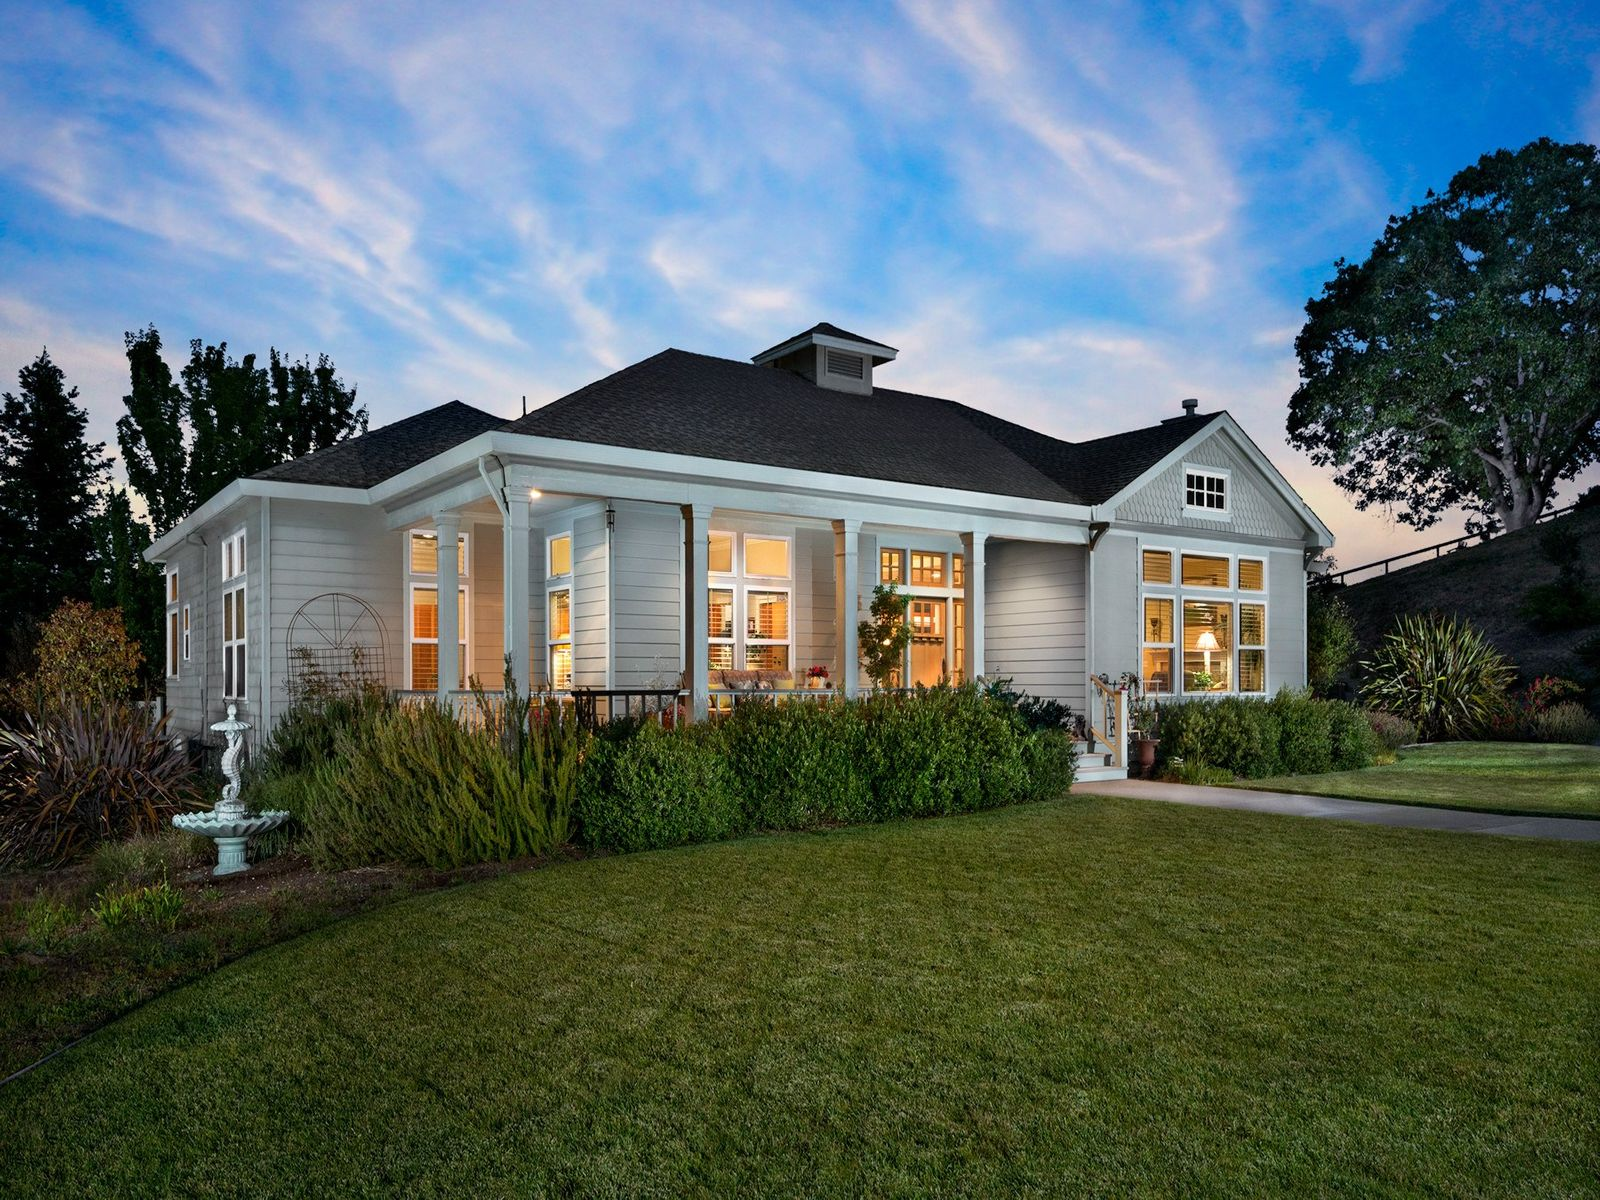 Enchanting Country Oasis, Petaluma CA Single Family Home - Sonoma - Napa Real Estate